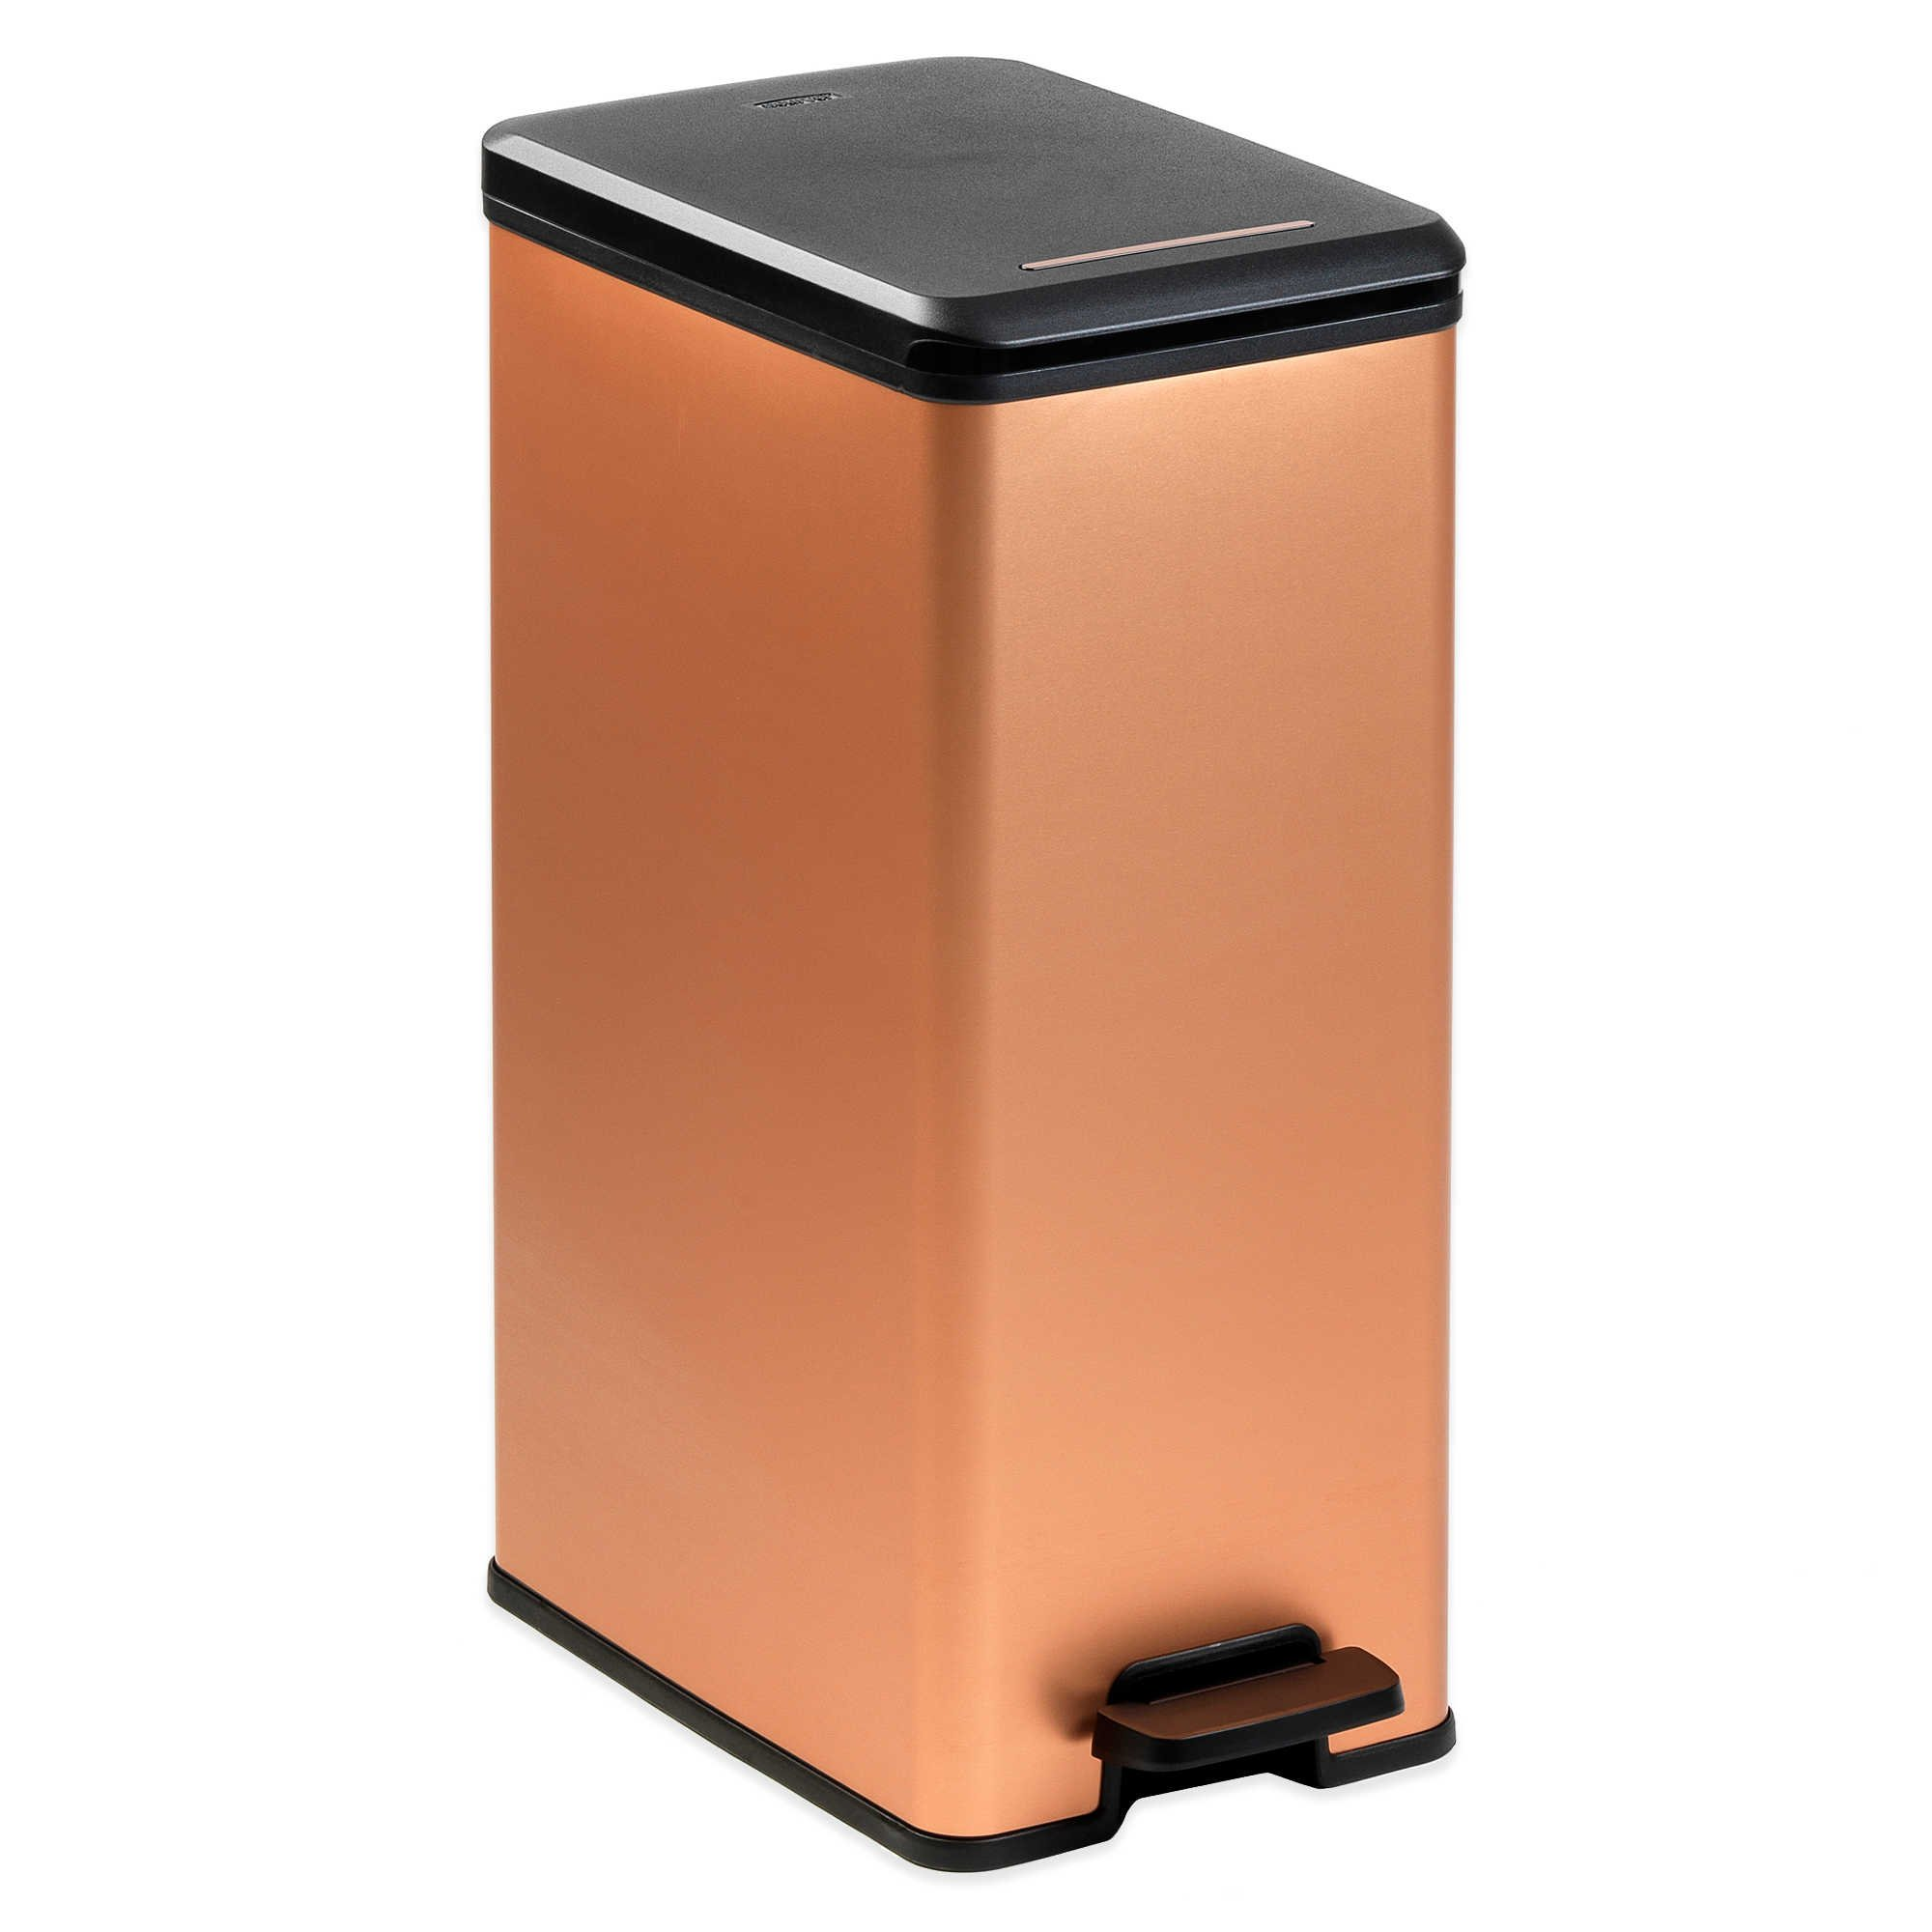 Slim Copper Finish Metallic Trash Can with Plastic Bag ...